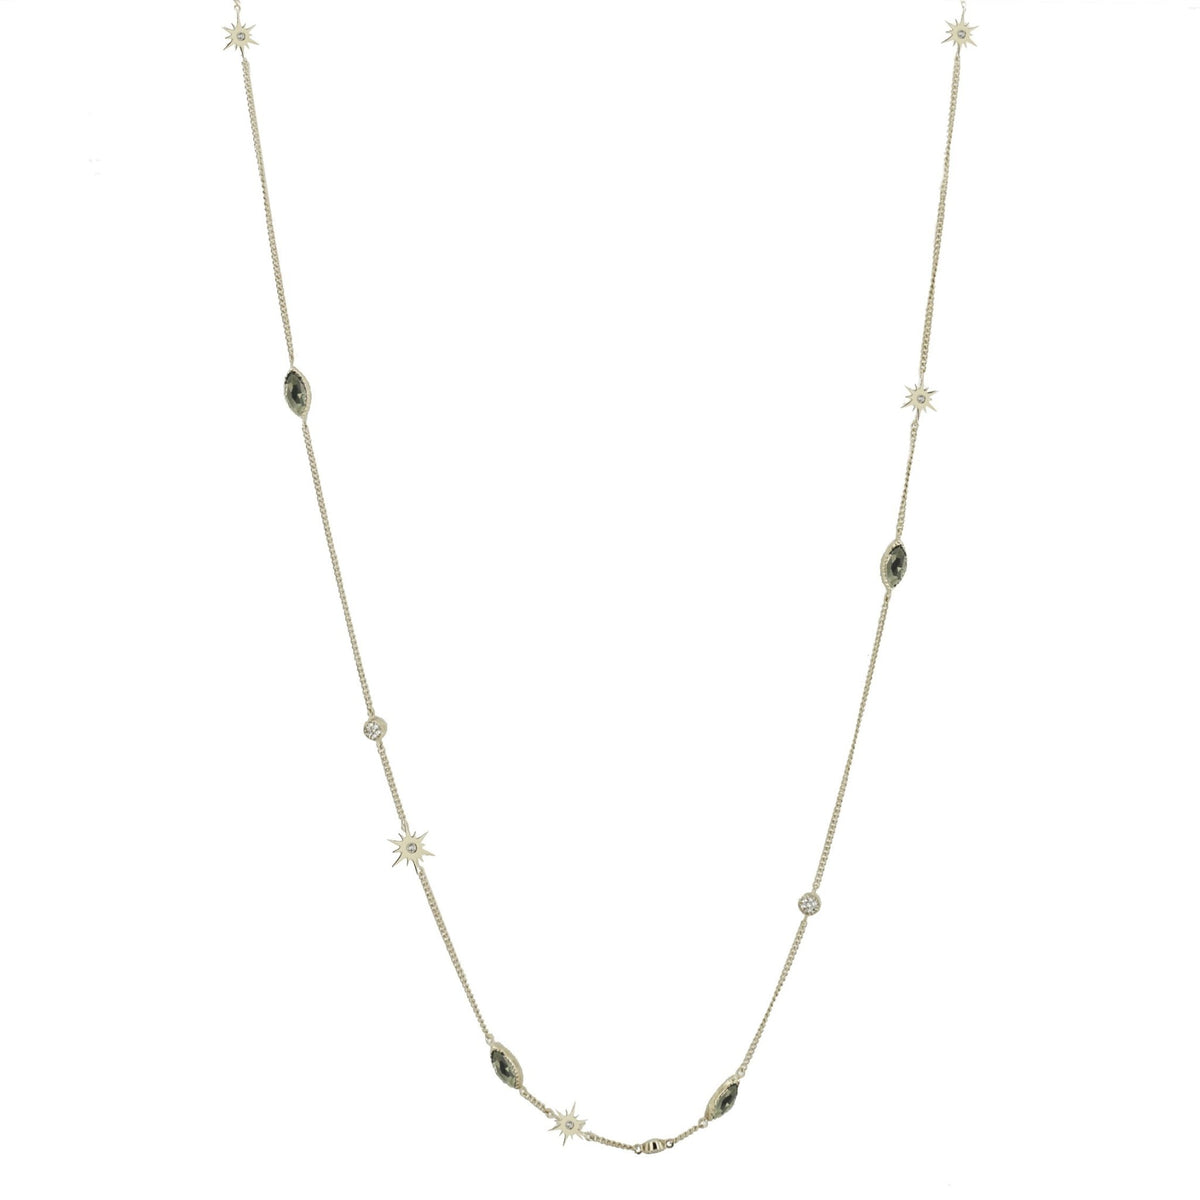 LONG BELIEVE CHOKER NECKLACE - METALLIC PYRITE, CUBIC ZIRCONIA & SILVER - SO PRETTY CARA COTTER